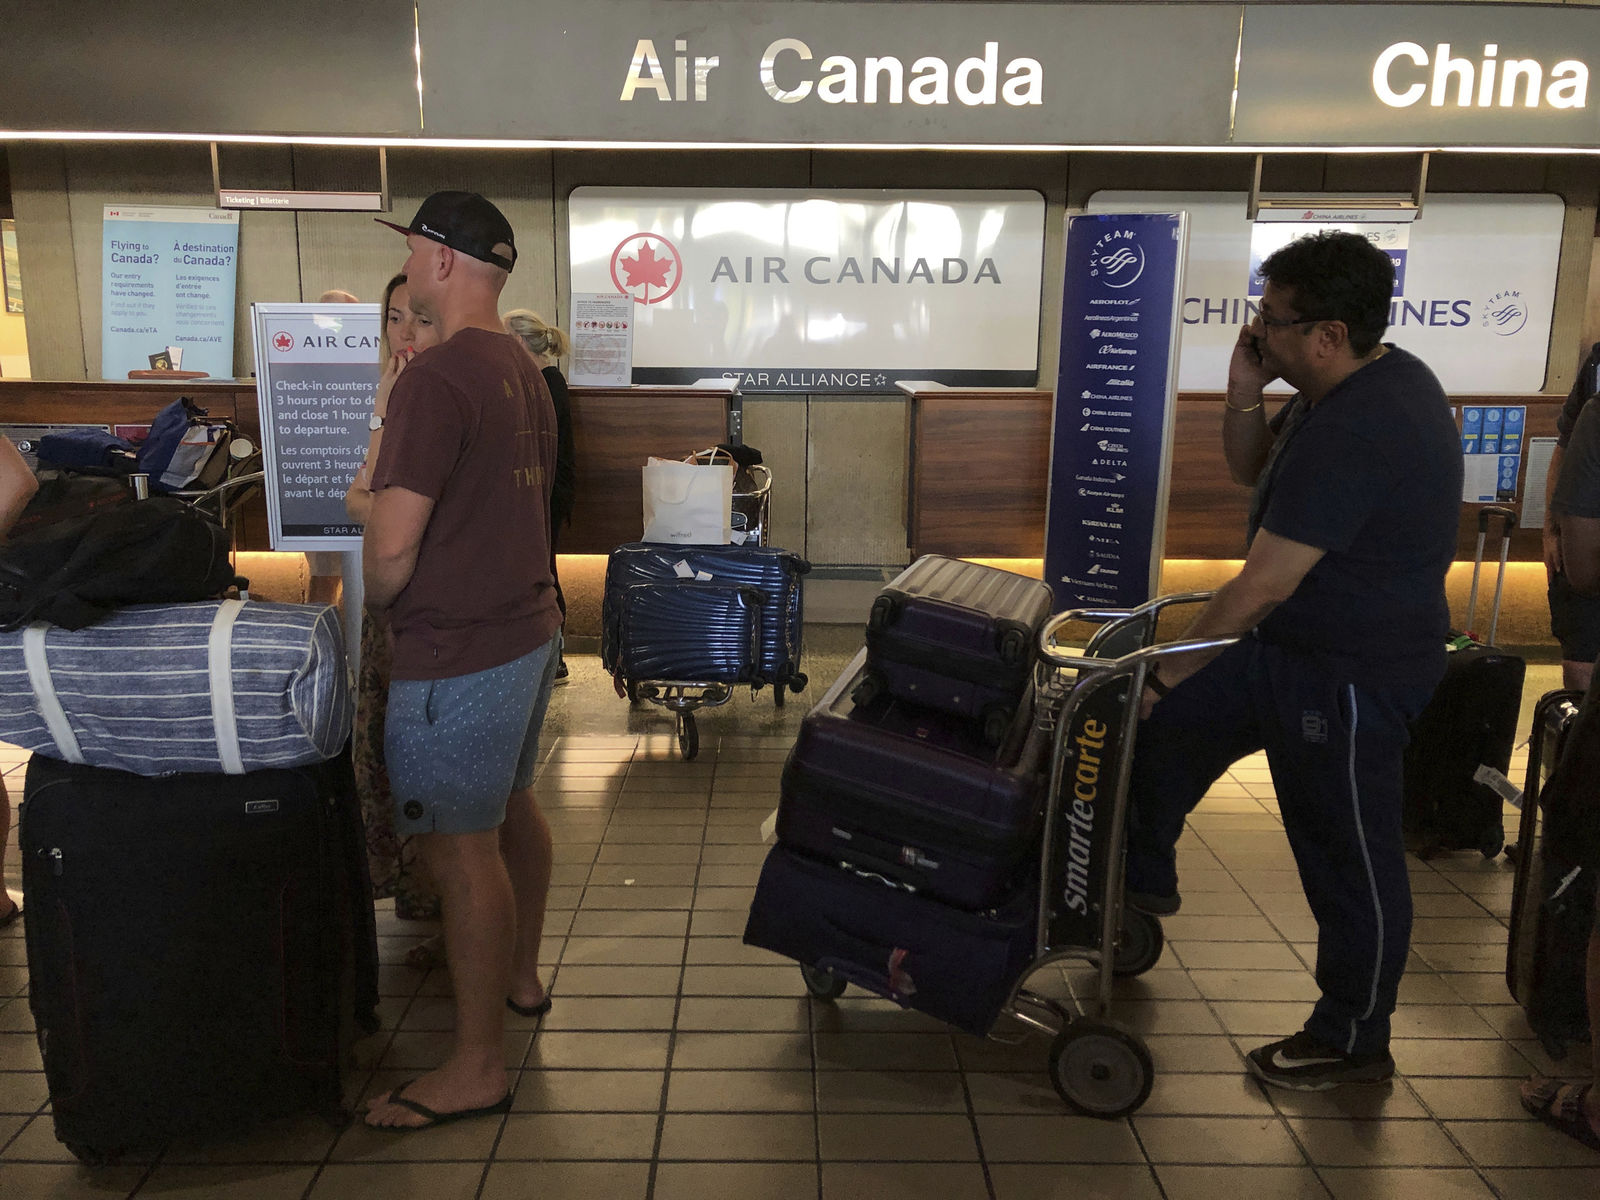 Passengers from an Australia-bound Air Canada flight diverted to Honolulu Thursday, July 11, 2019, after about 35 people were injured during turbulence. (AP Photo/Caleb Jones)